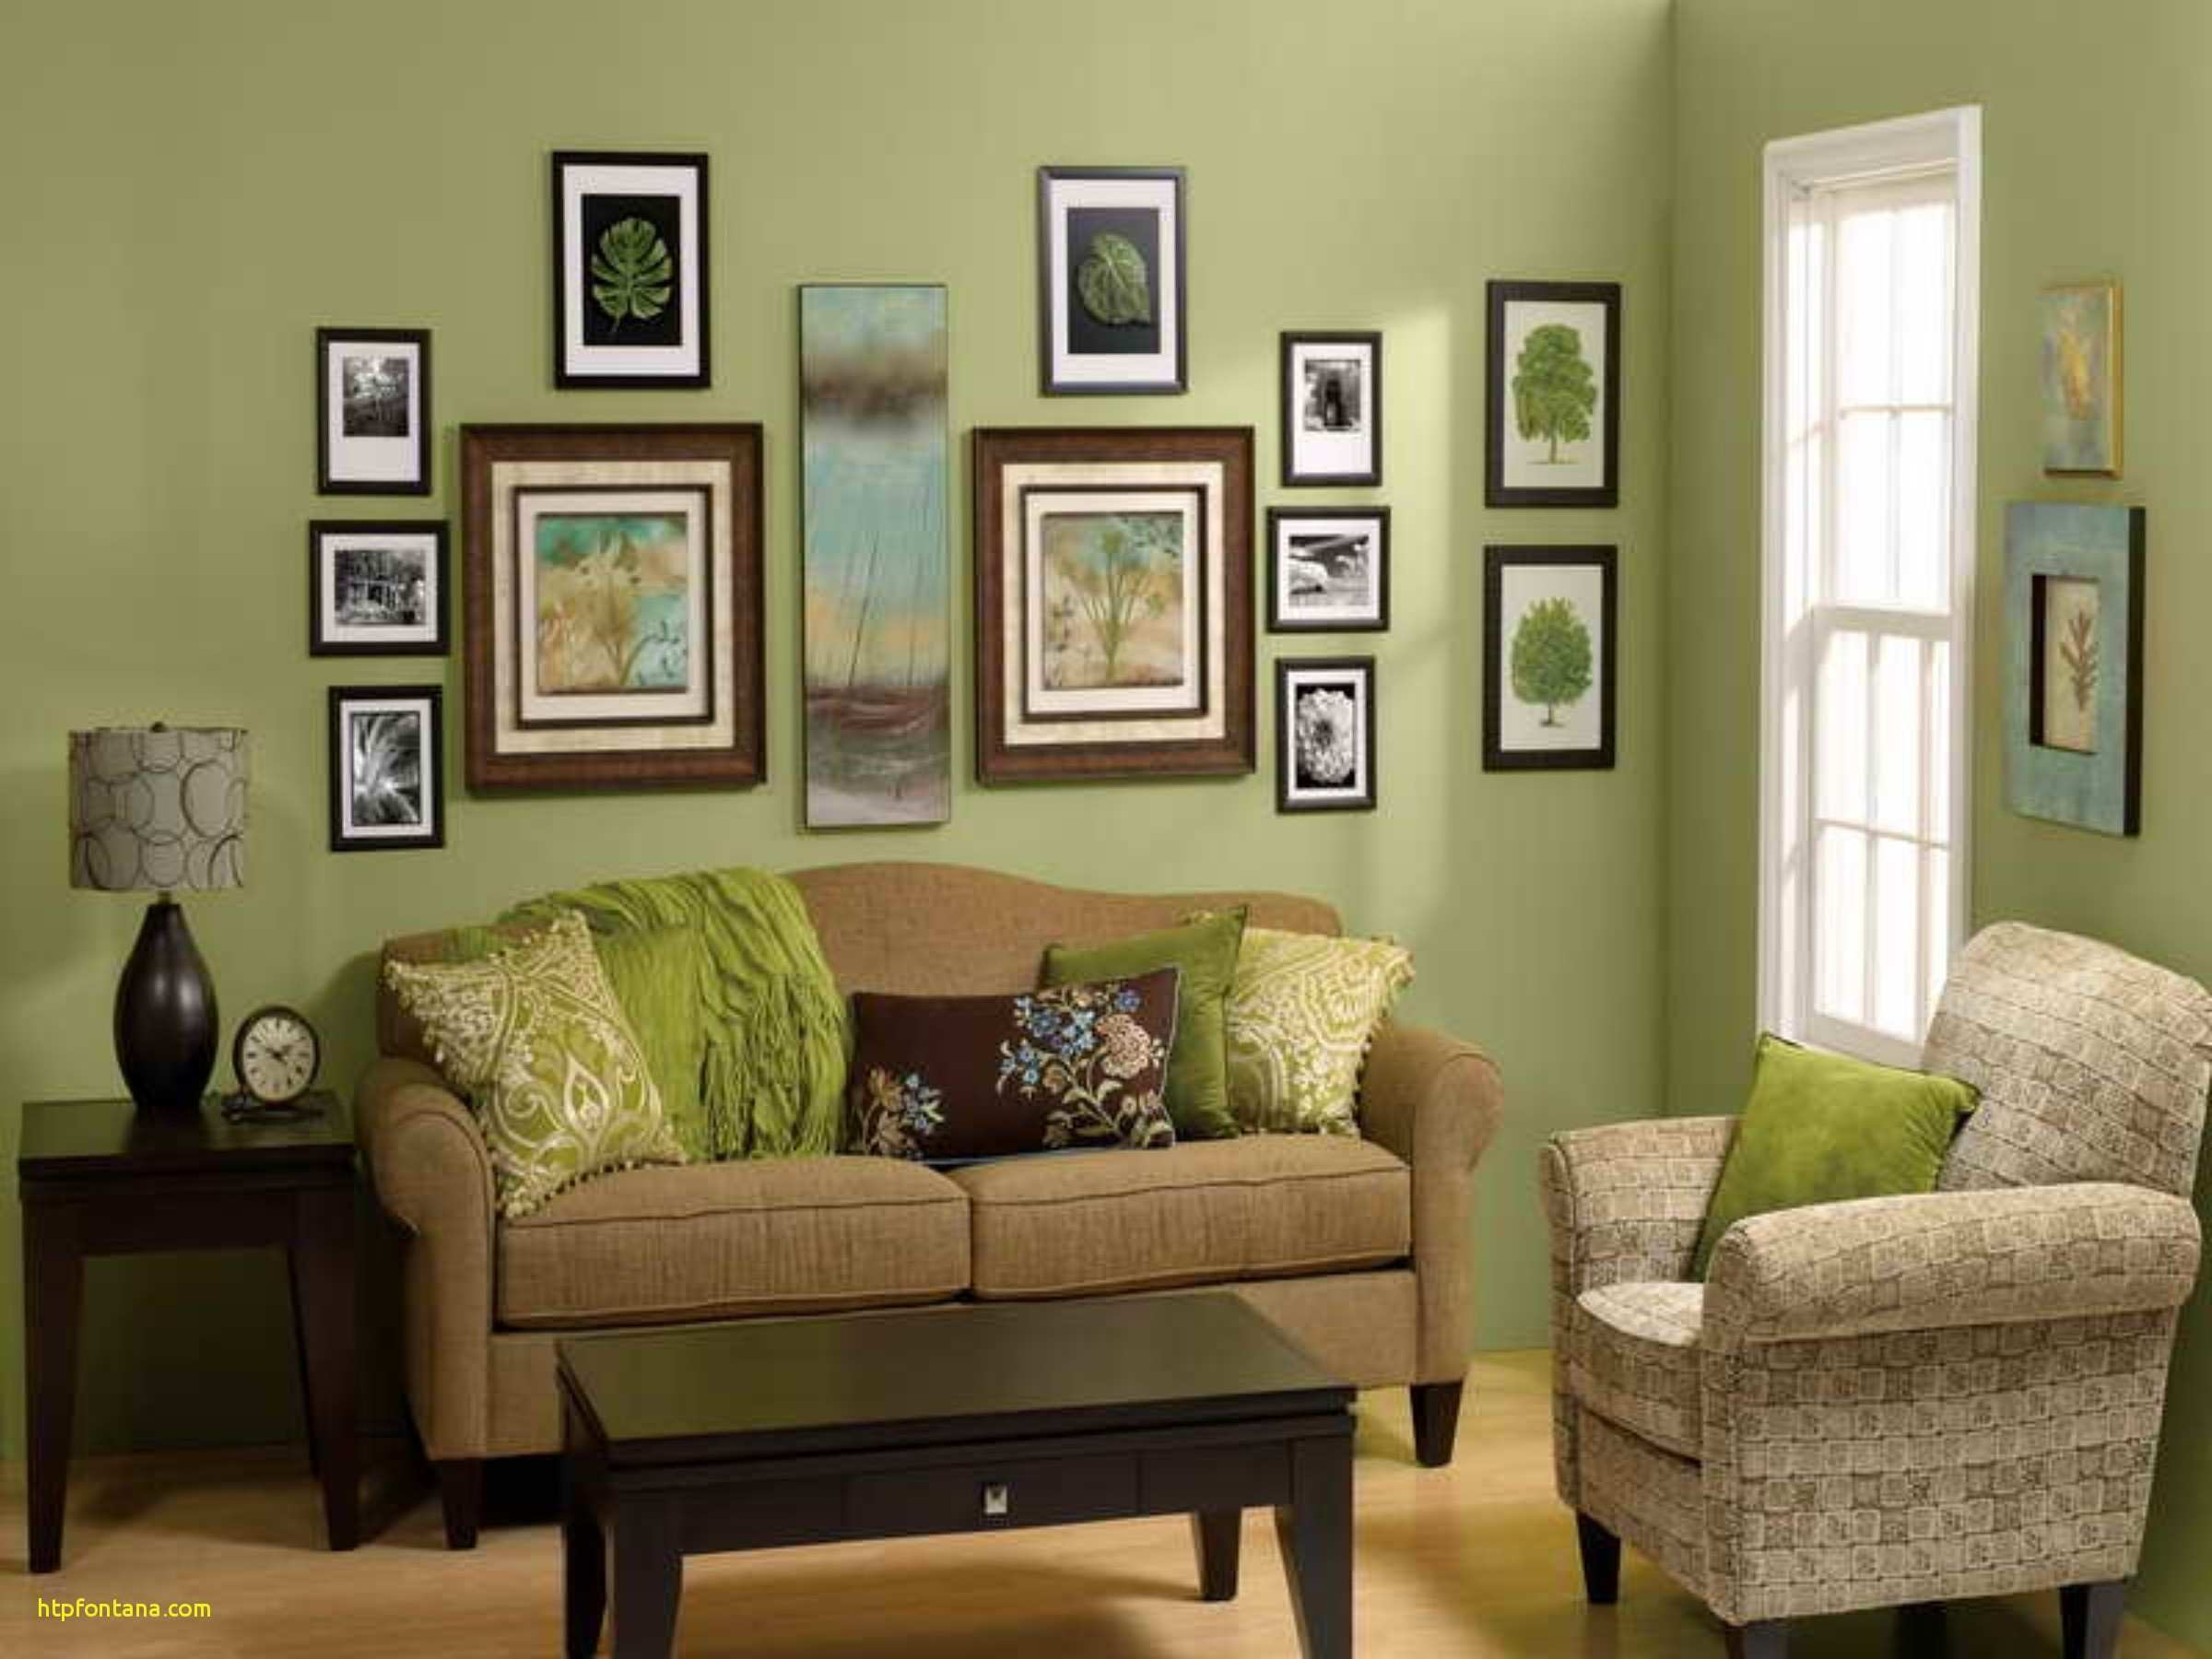 Rustic Living Room Wall Art Fresh Home Design Decorating Ideas For